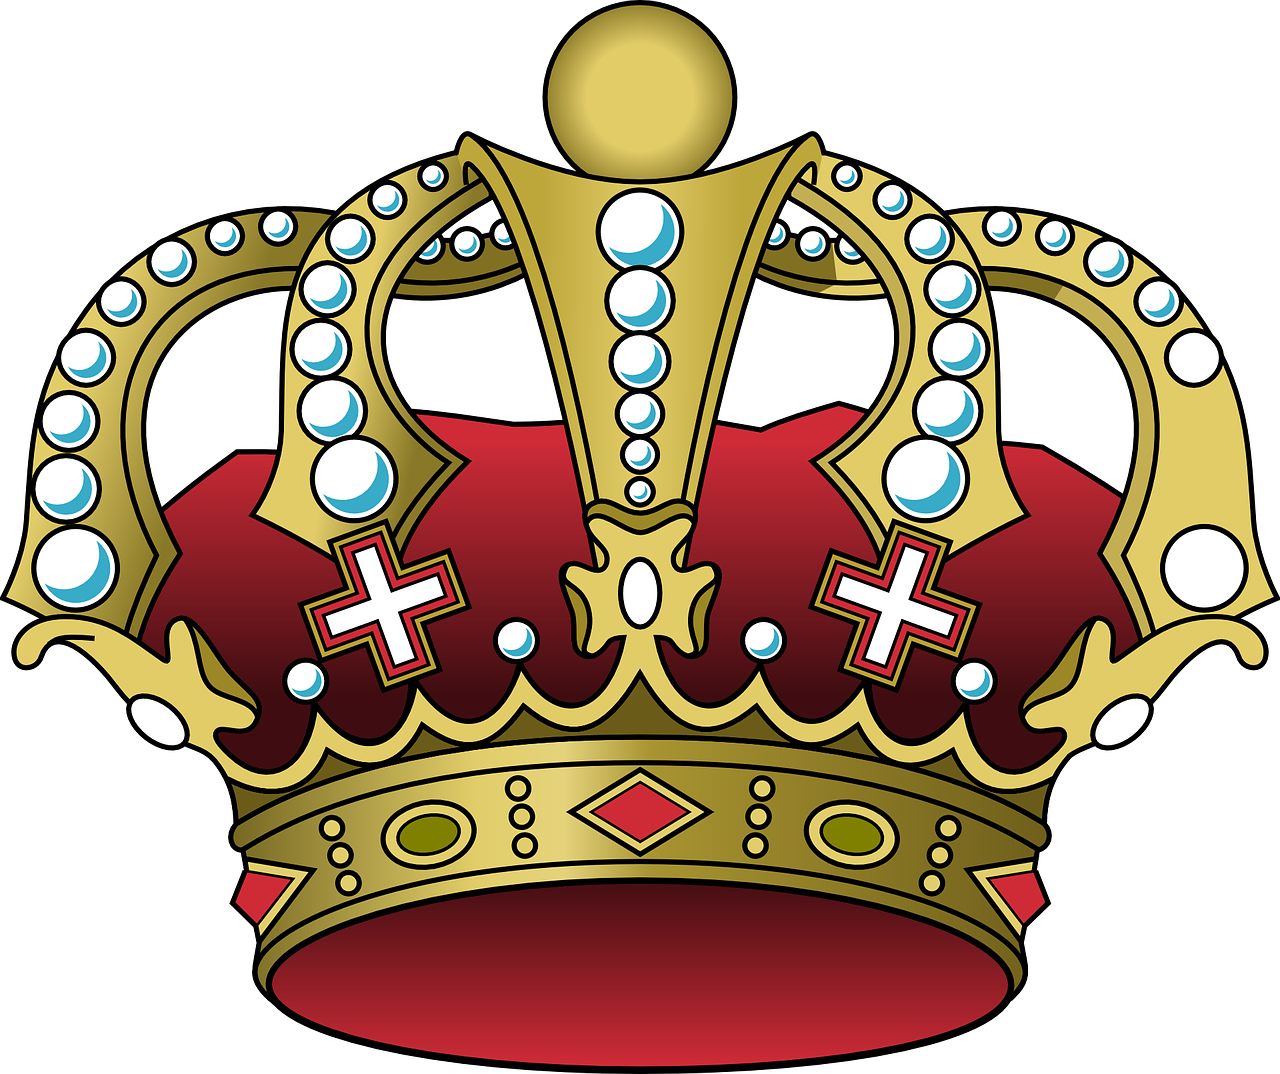 Blue king crown clipart clip transparent library Leave the Crown in the Garage.